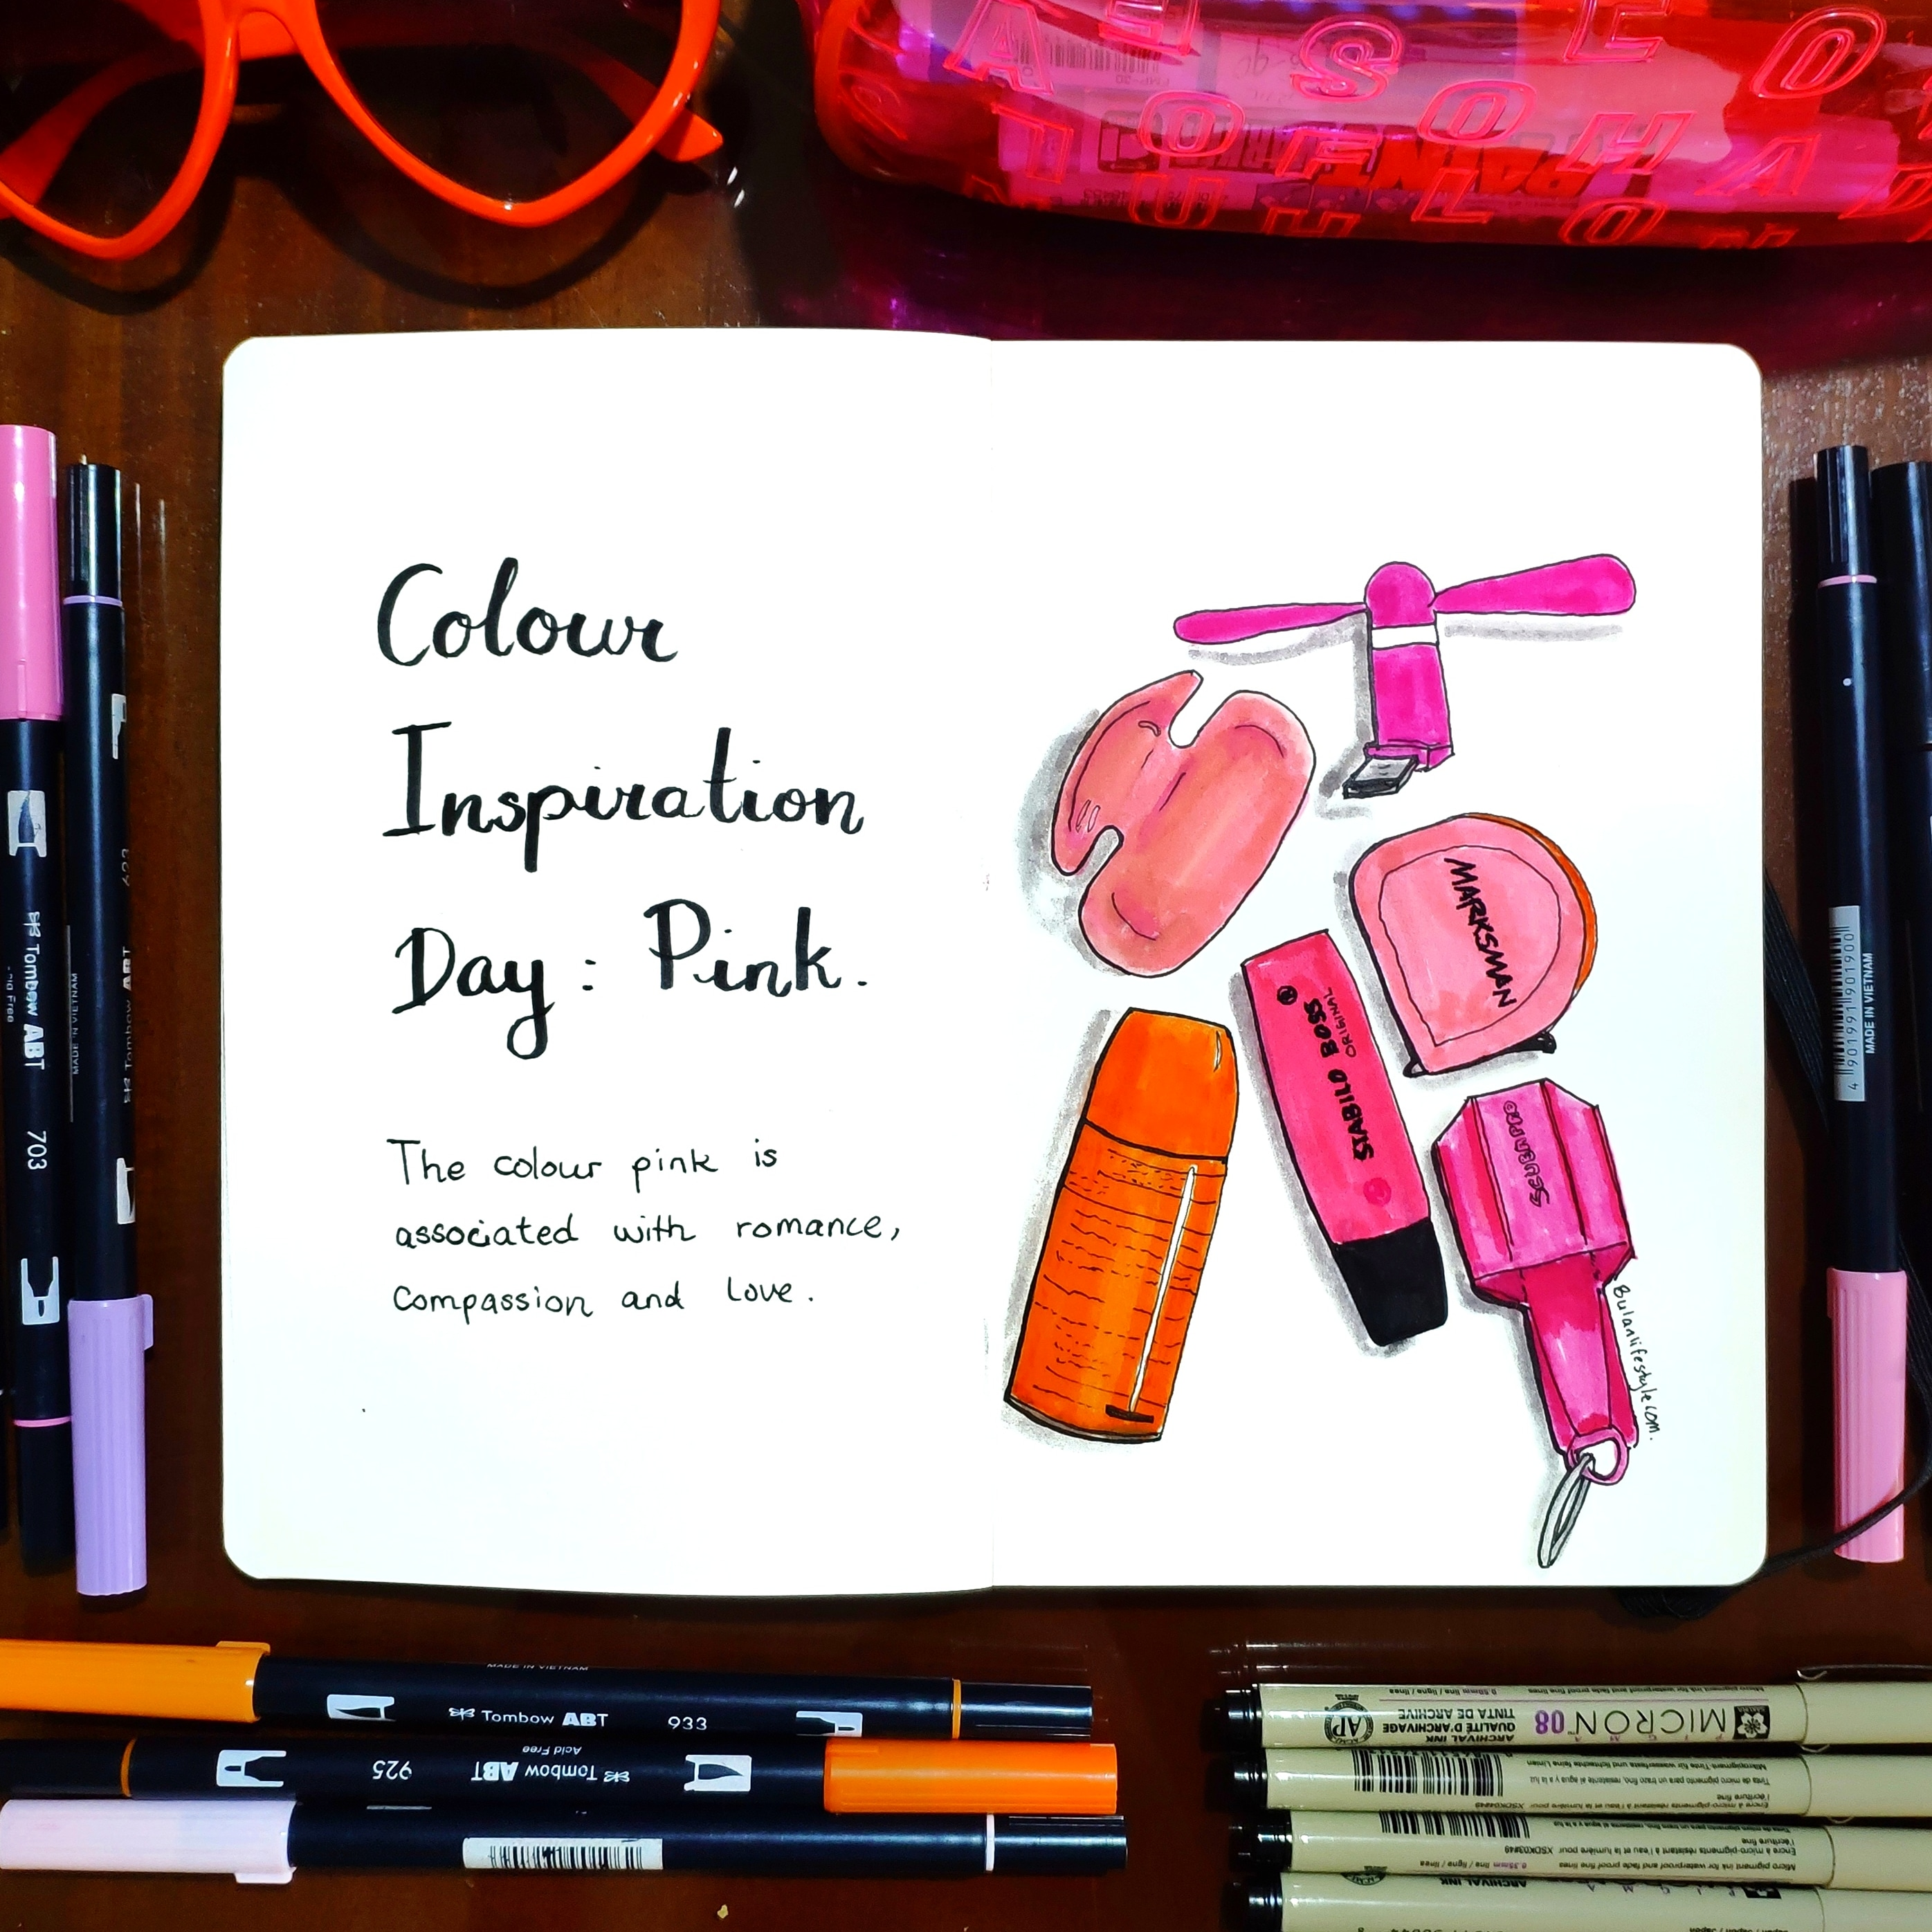 Colour inspiration day : pink